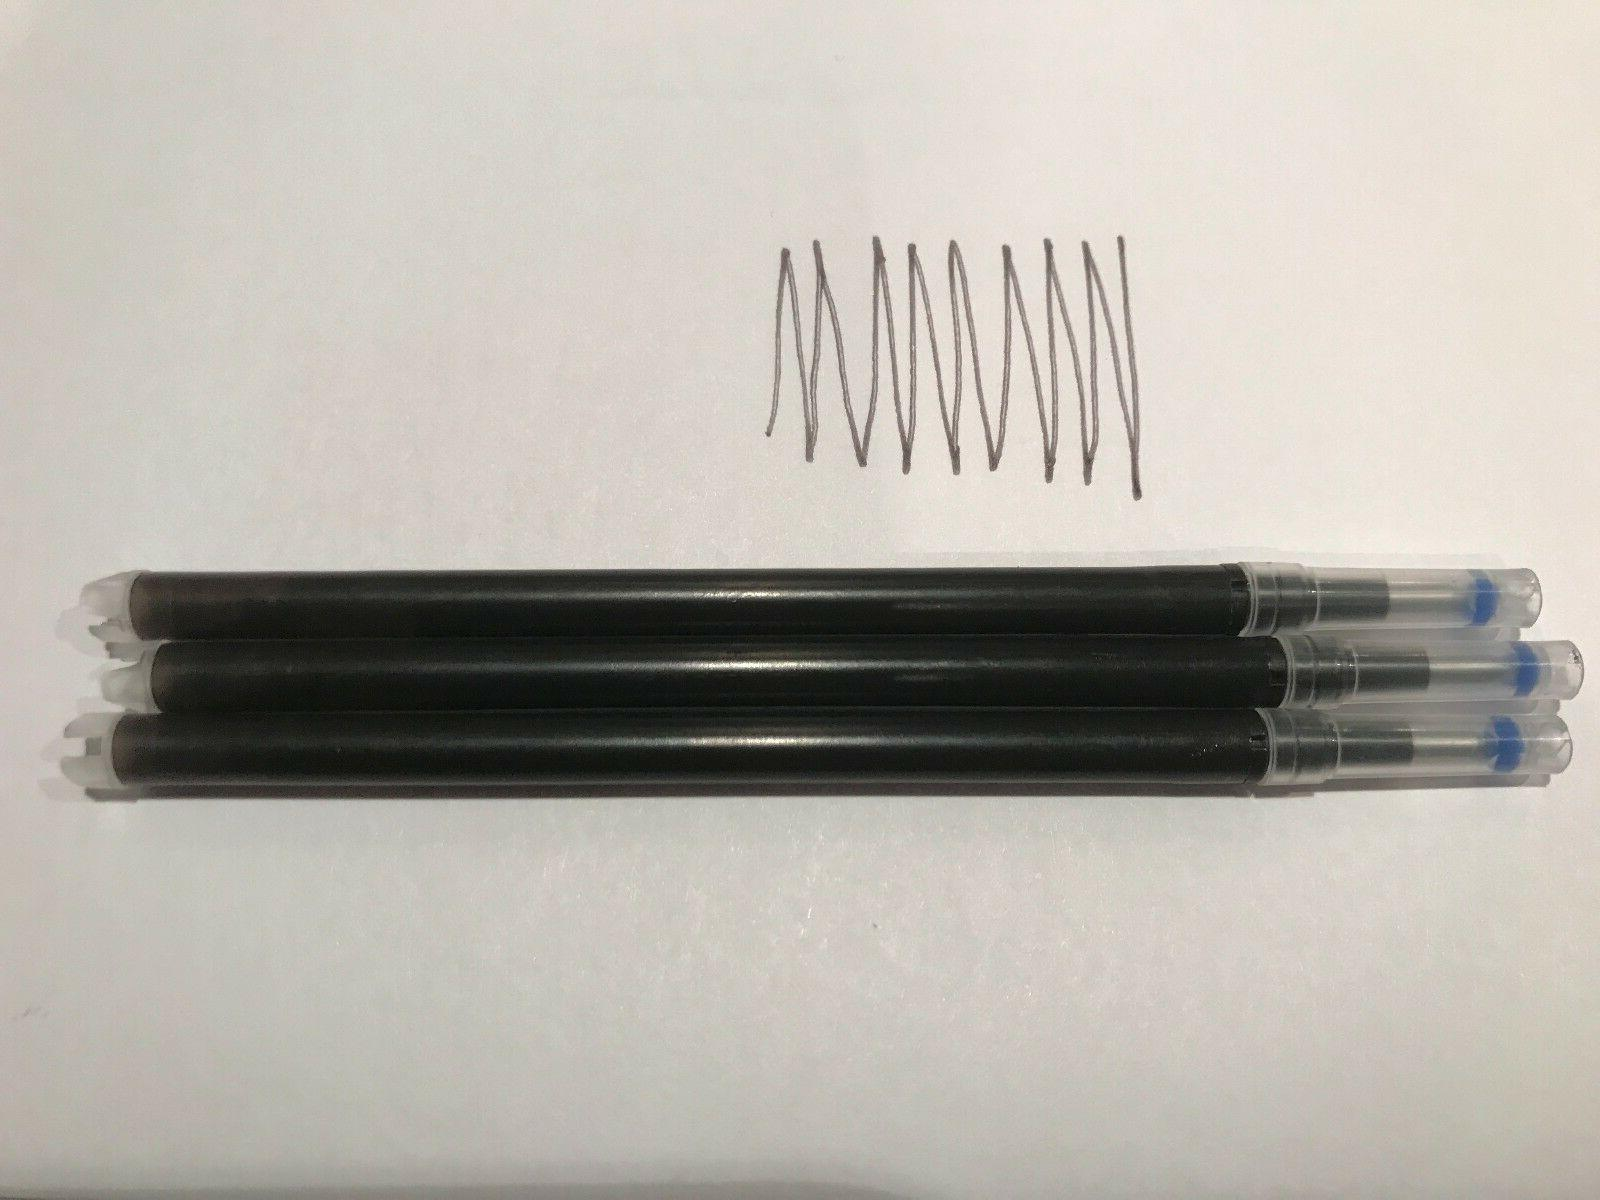 New Rollerball Gel fit Pilot Frixion 3 6 pack